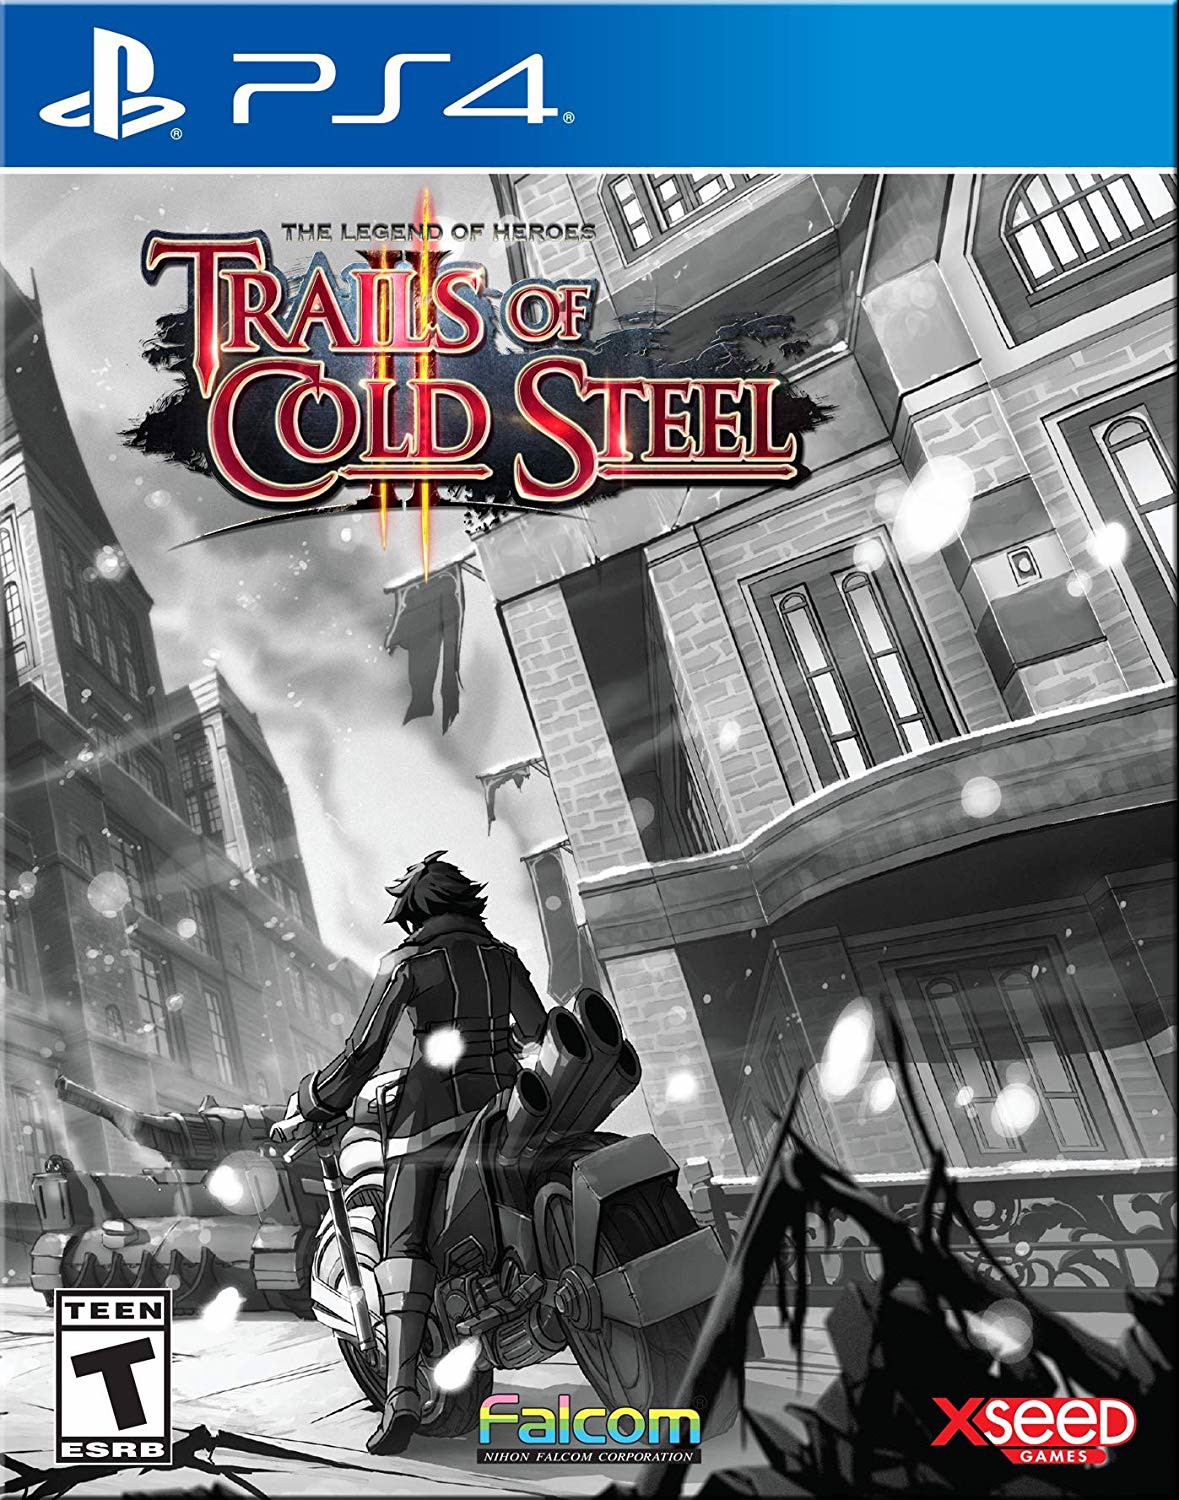 725 - The Legend of Heroes: Trails of Cold Steel II